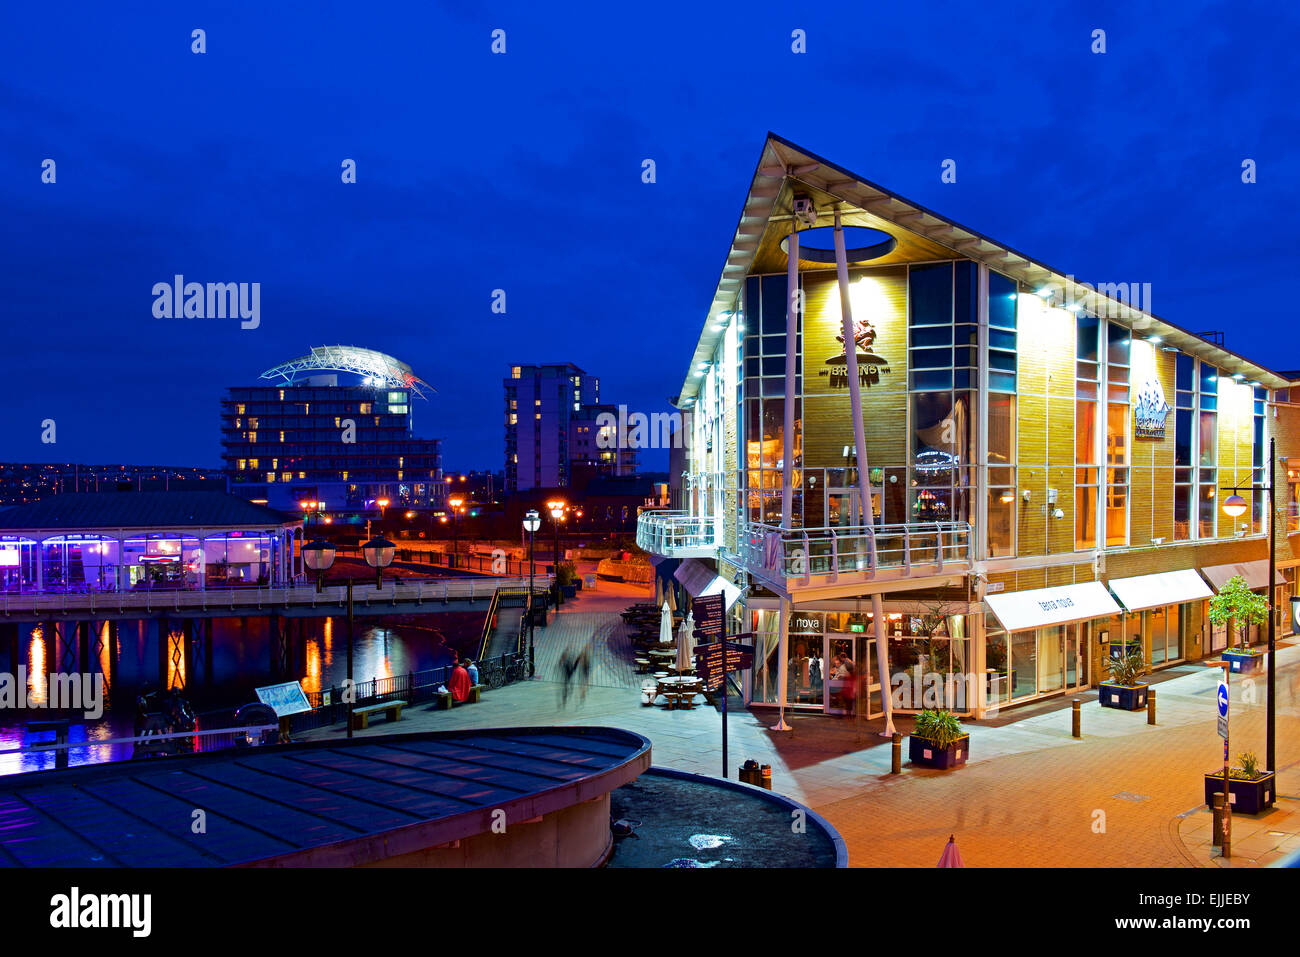 Mermaid Quay, Cardiff Bay, at night, Wales UK - Stock Image